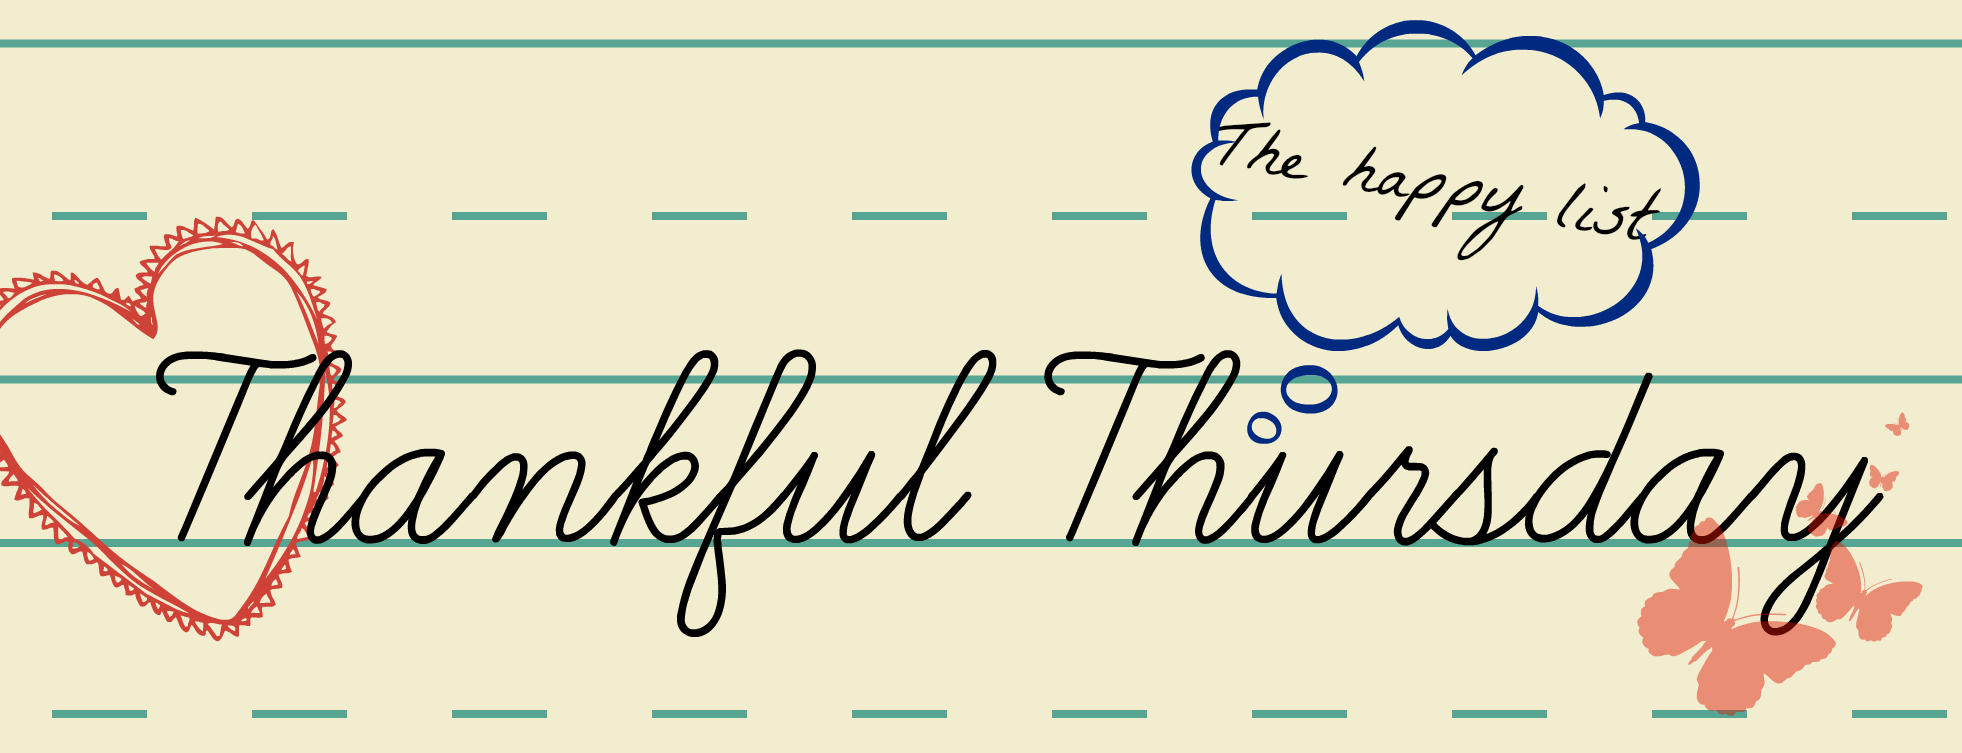 Grateful thoughts lead to gracious words